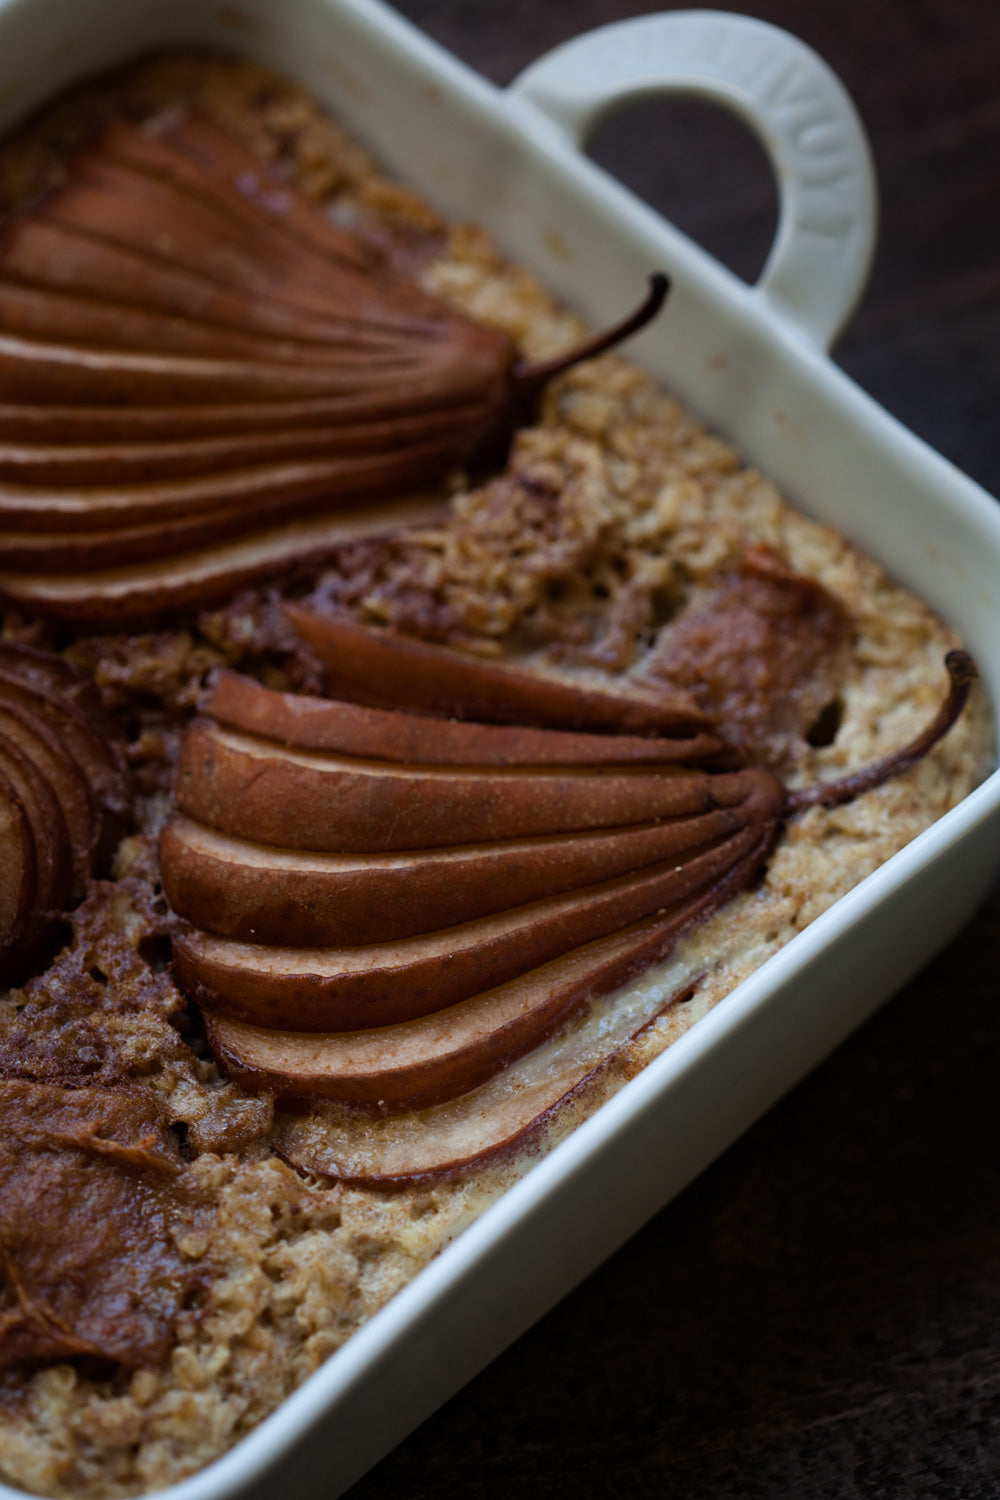 Bosc Pear, Maple and Healthy Caramel Baked Oatmeal